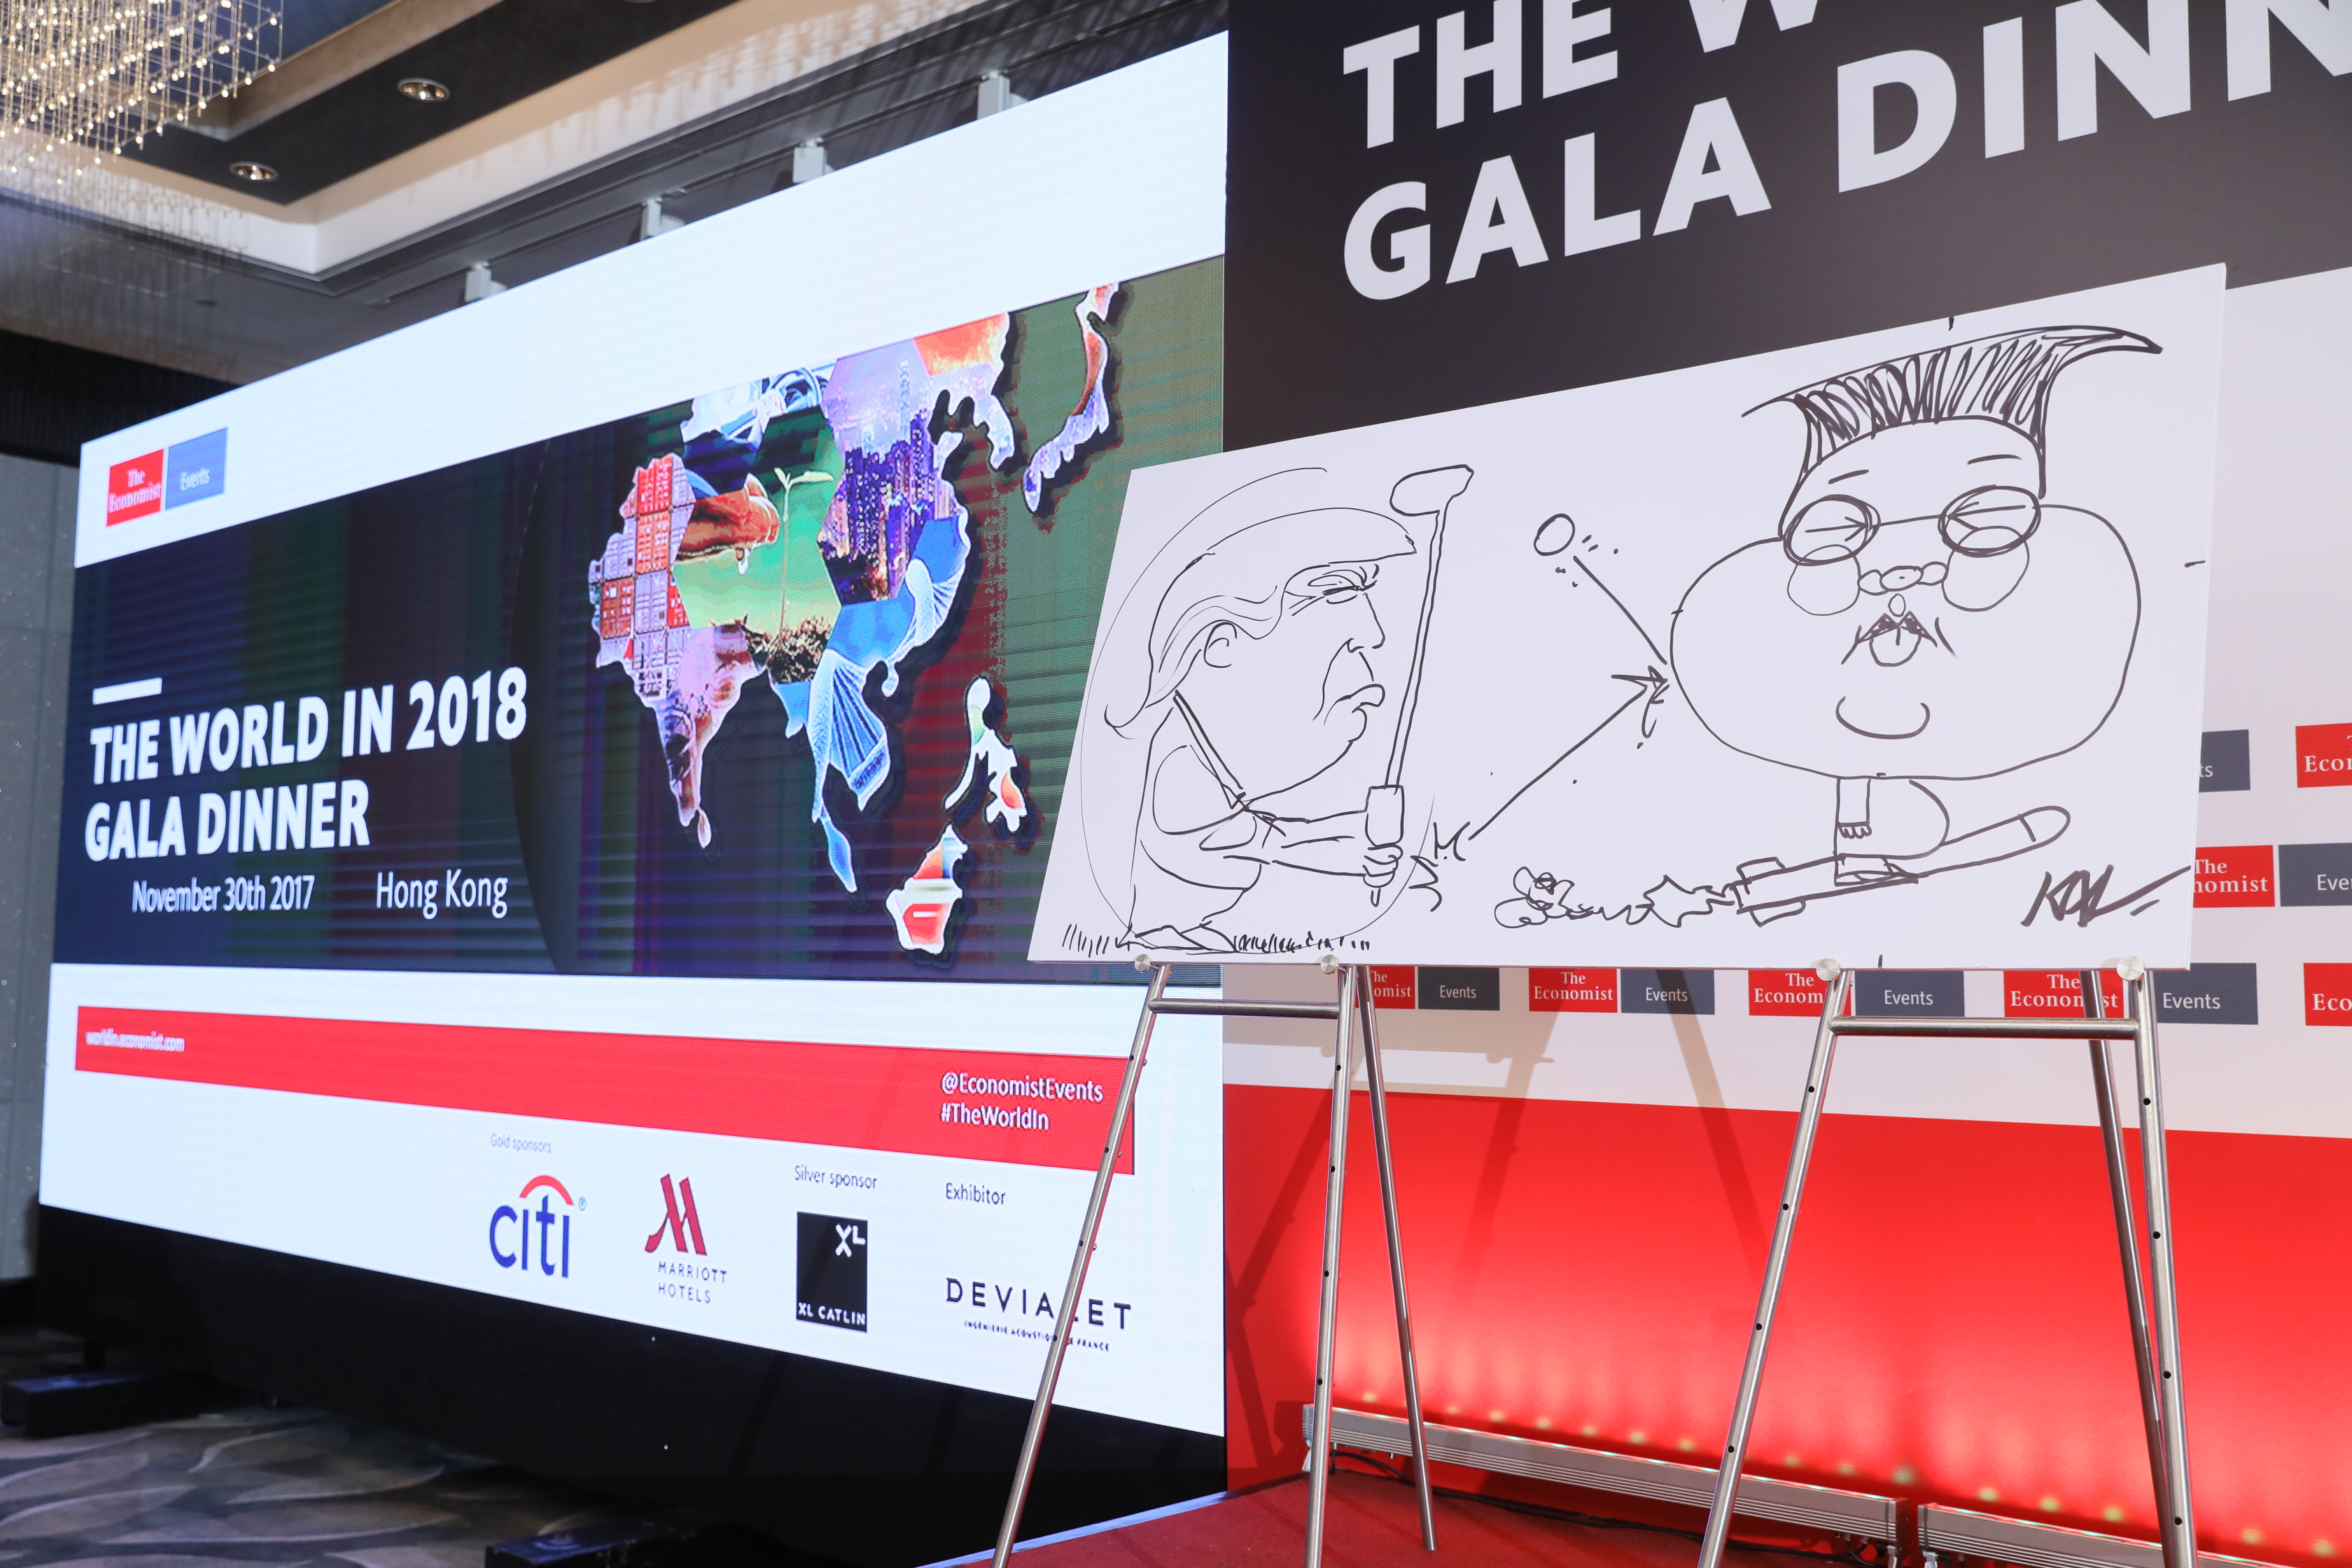 The World in 2019 Gala Dinner | The Economist Events